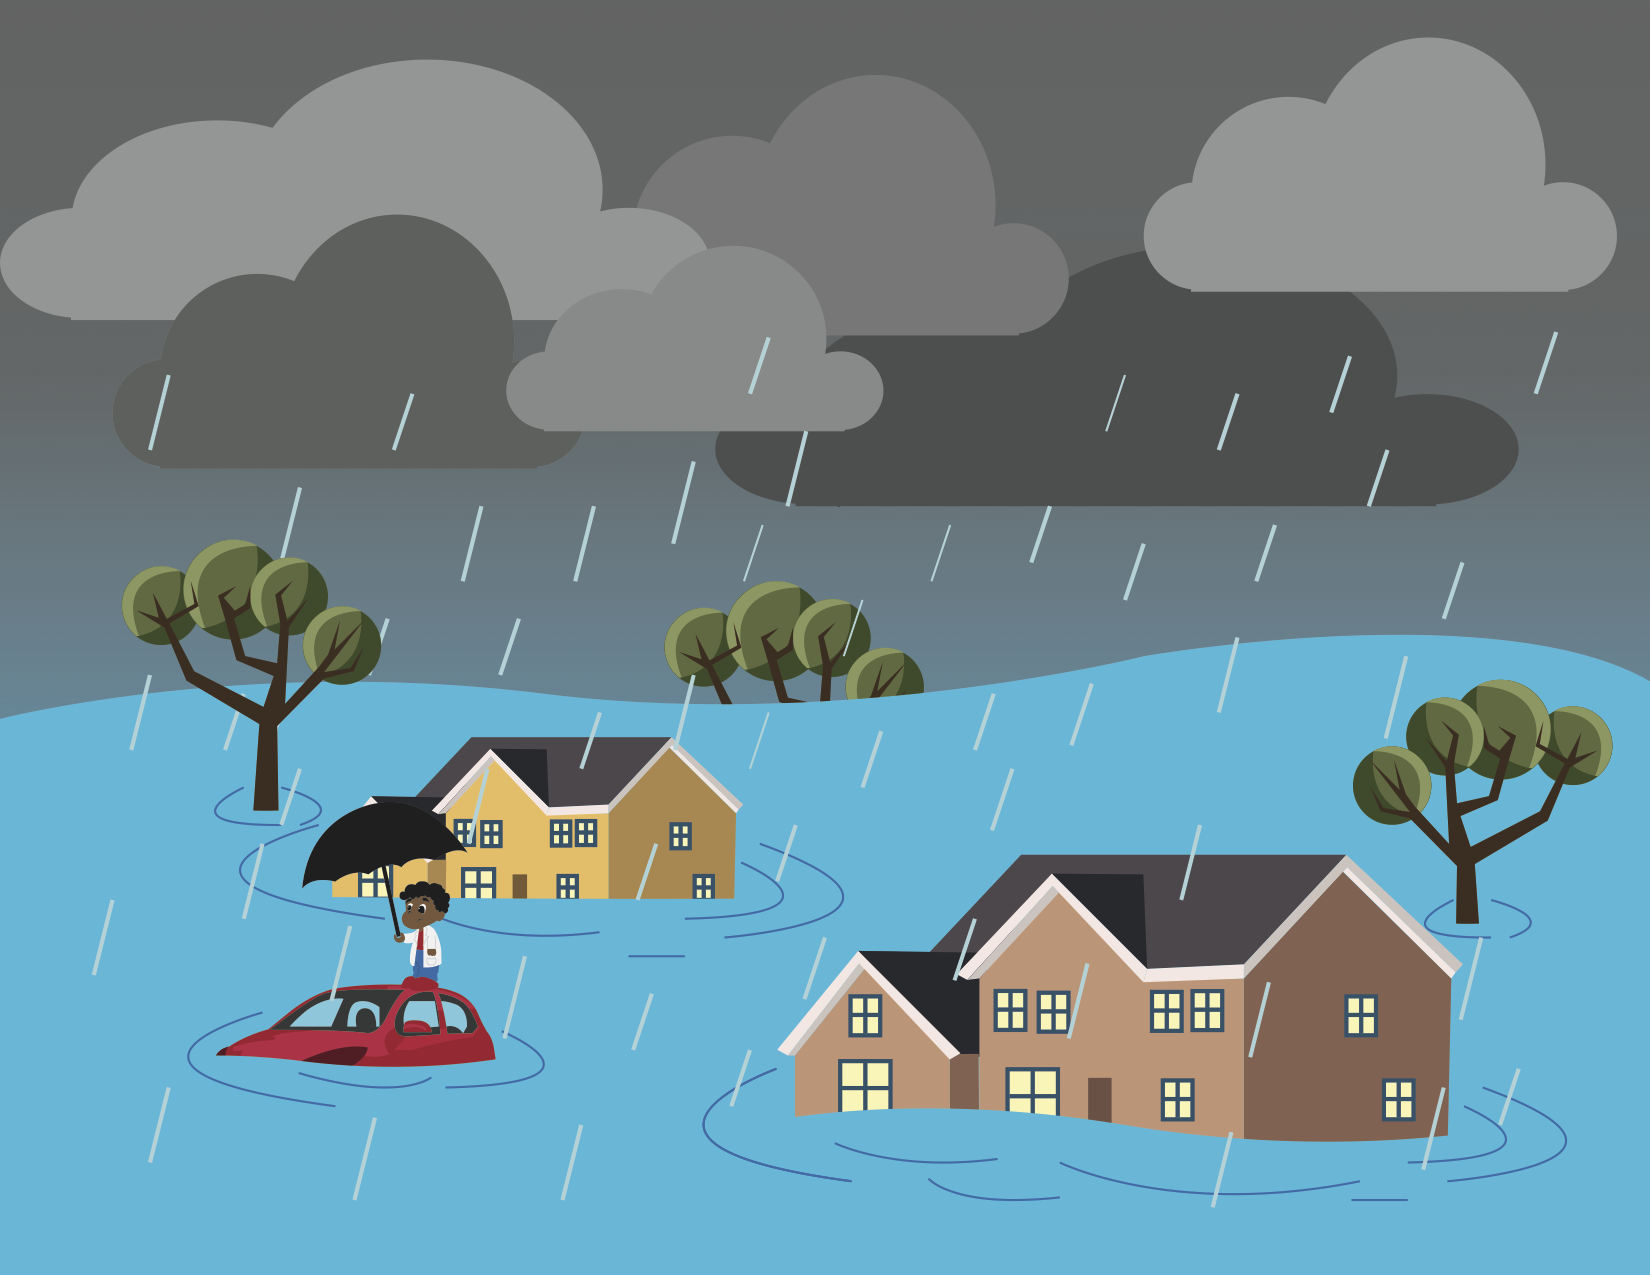 editorial the frequent flooding in houston needs to be clipart drowning woman drowning clipart black and white